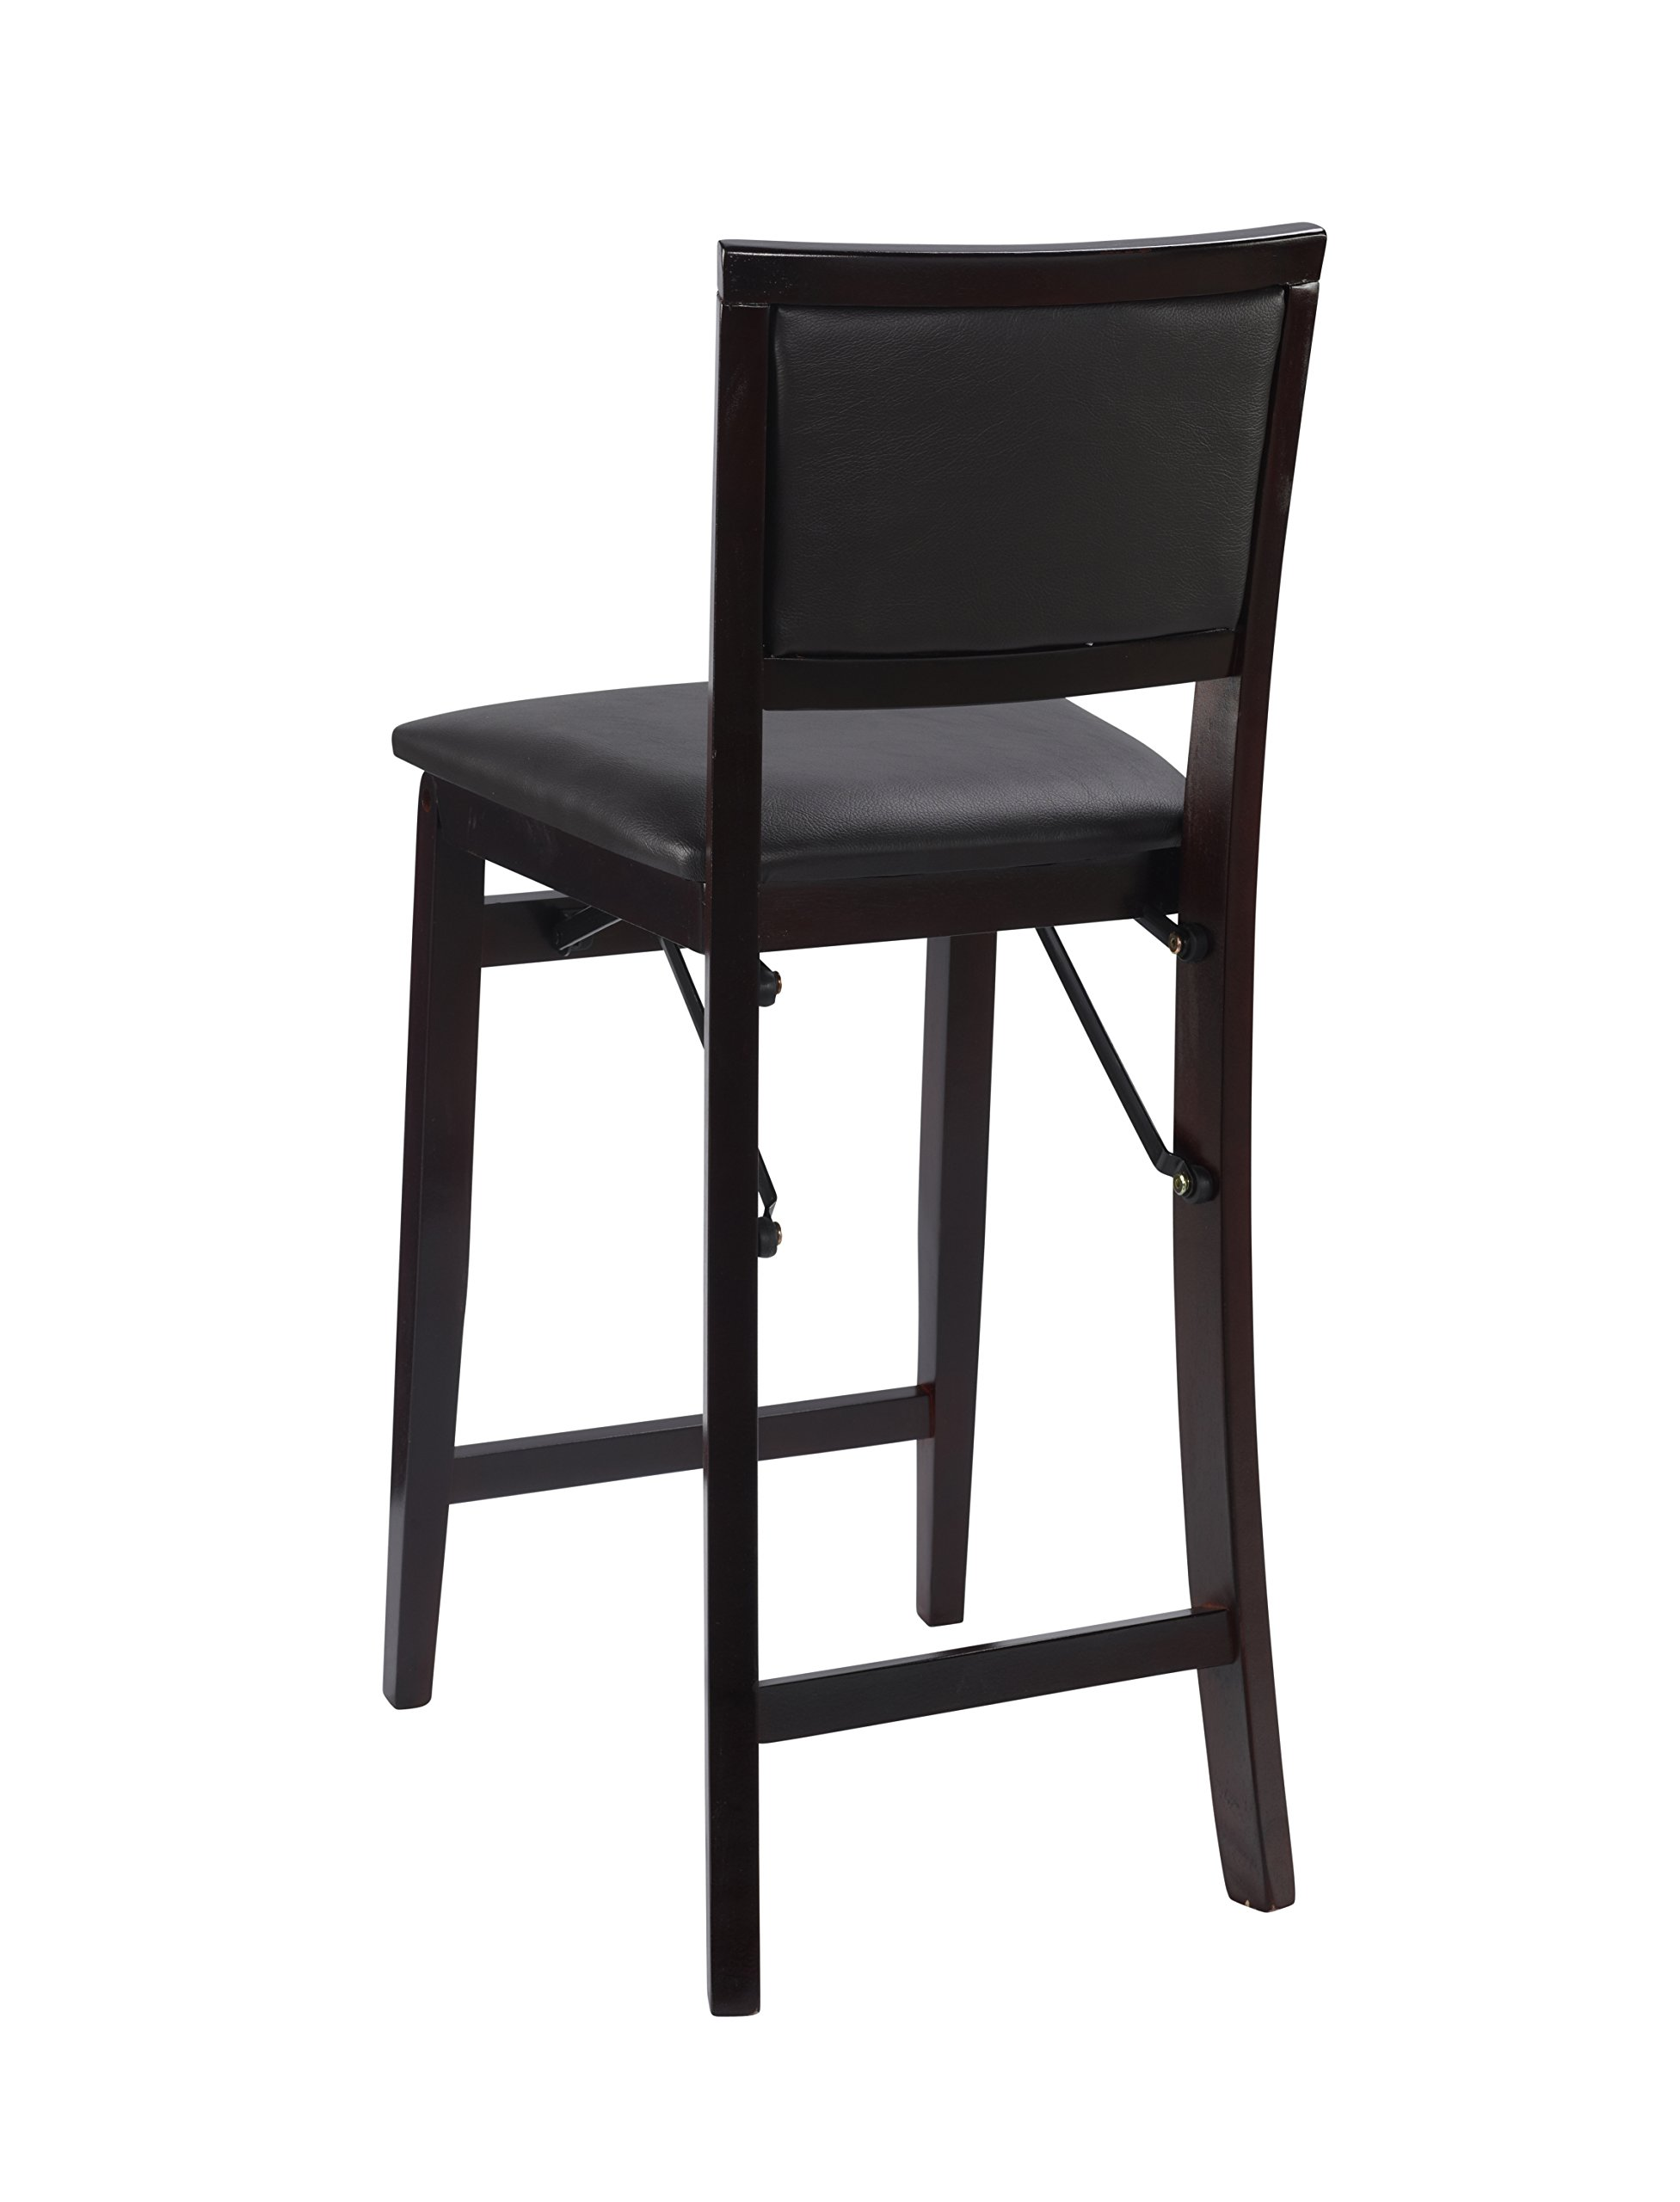 linon home decor keira pad back folding counter stool 24 inch ebay. Black Bedroom Furniture Sets. Home Design Ideas